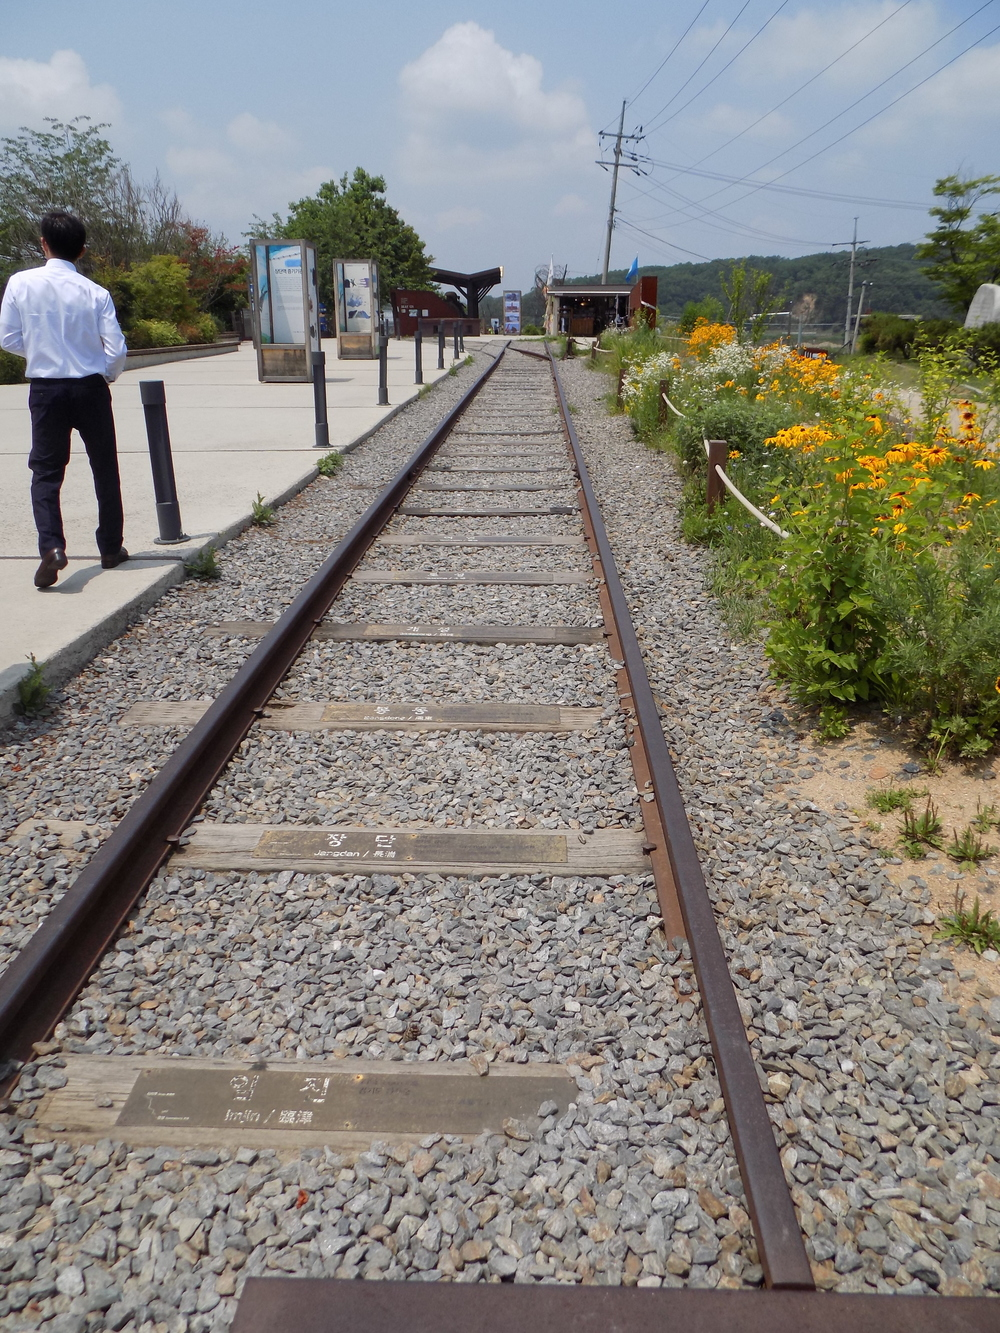 Partial railroad tracks that used to connect North and South Korea